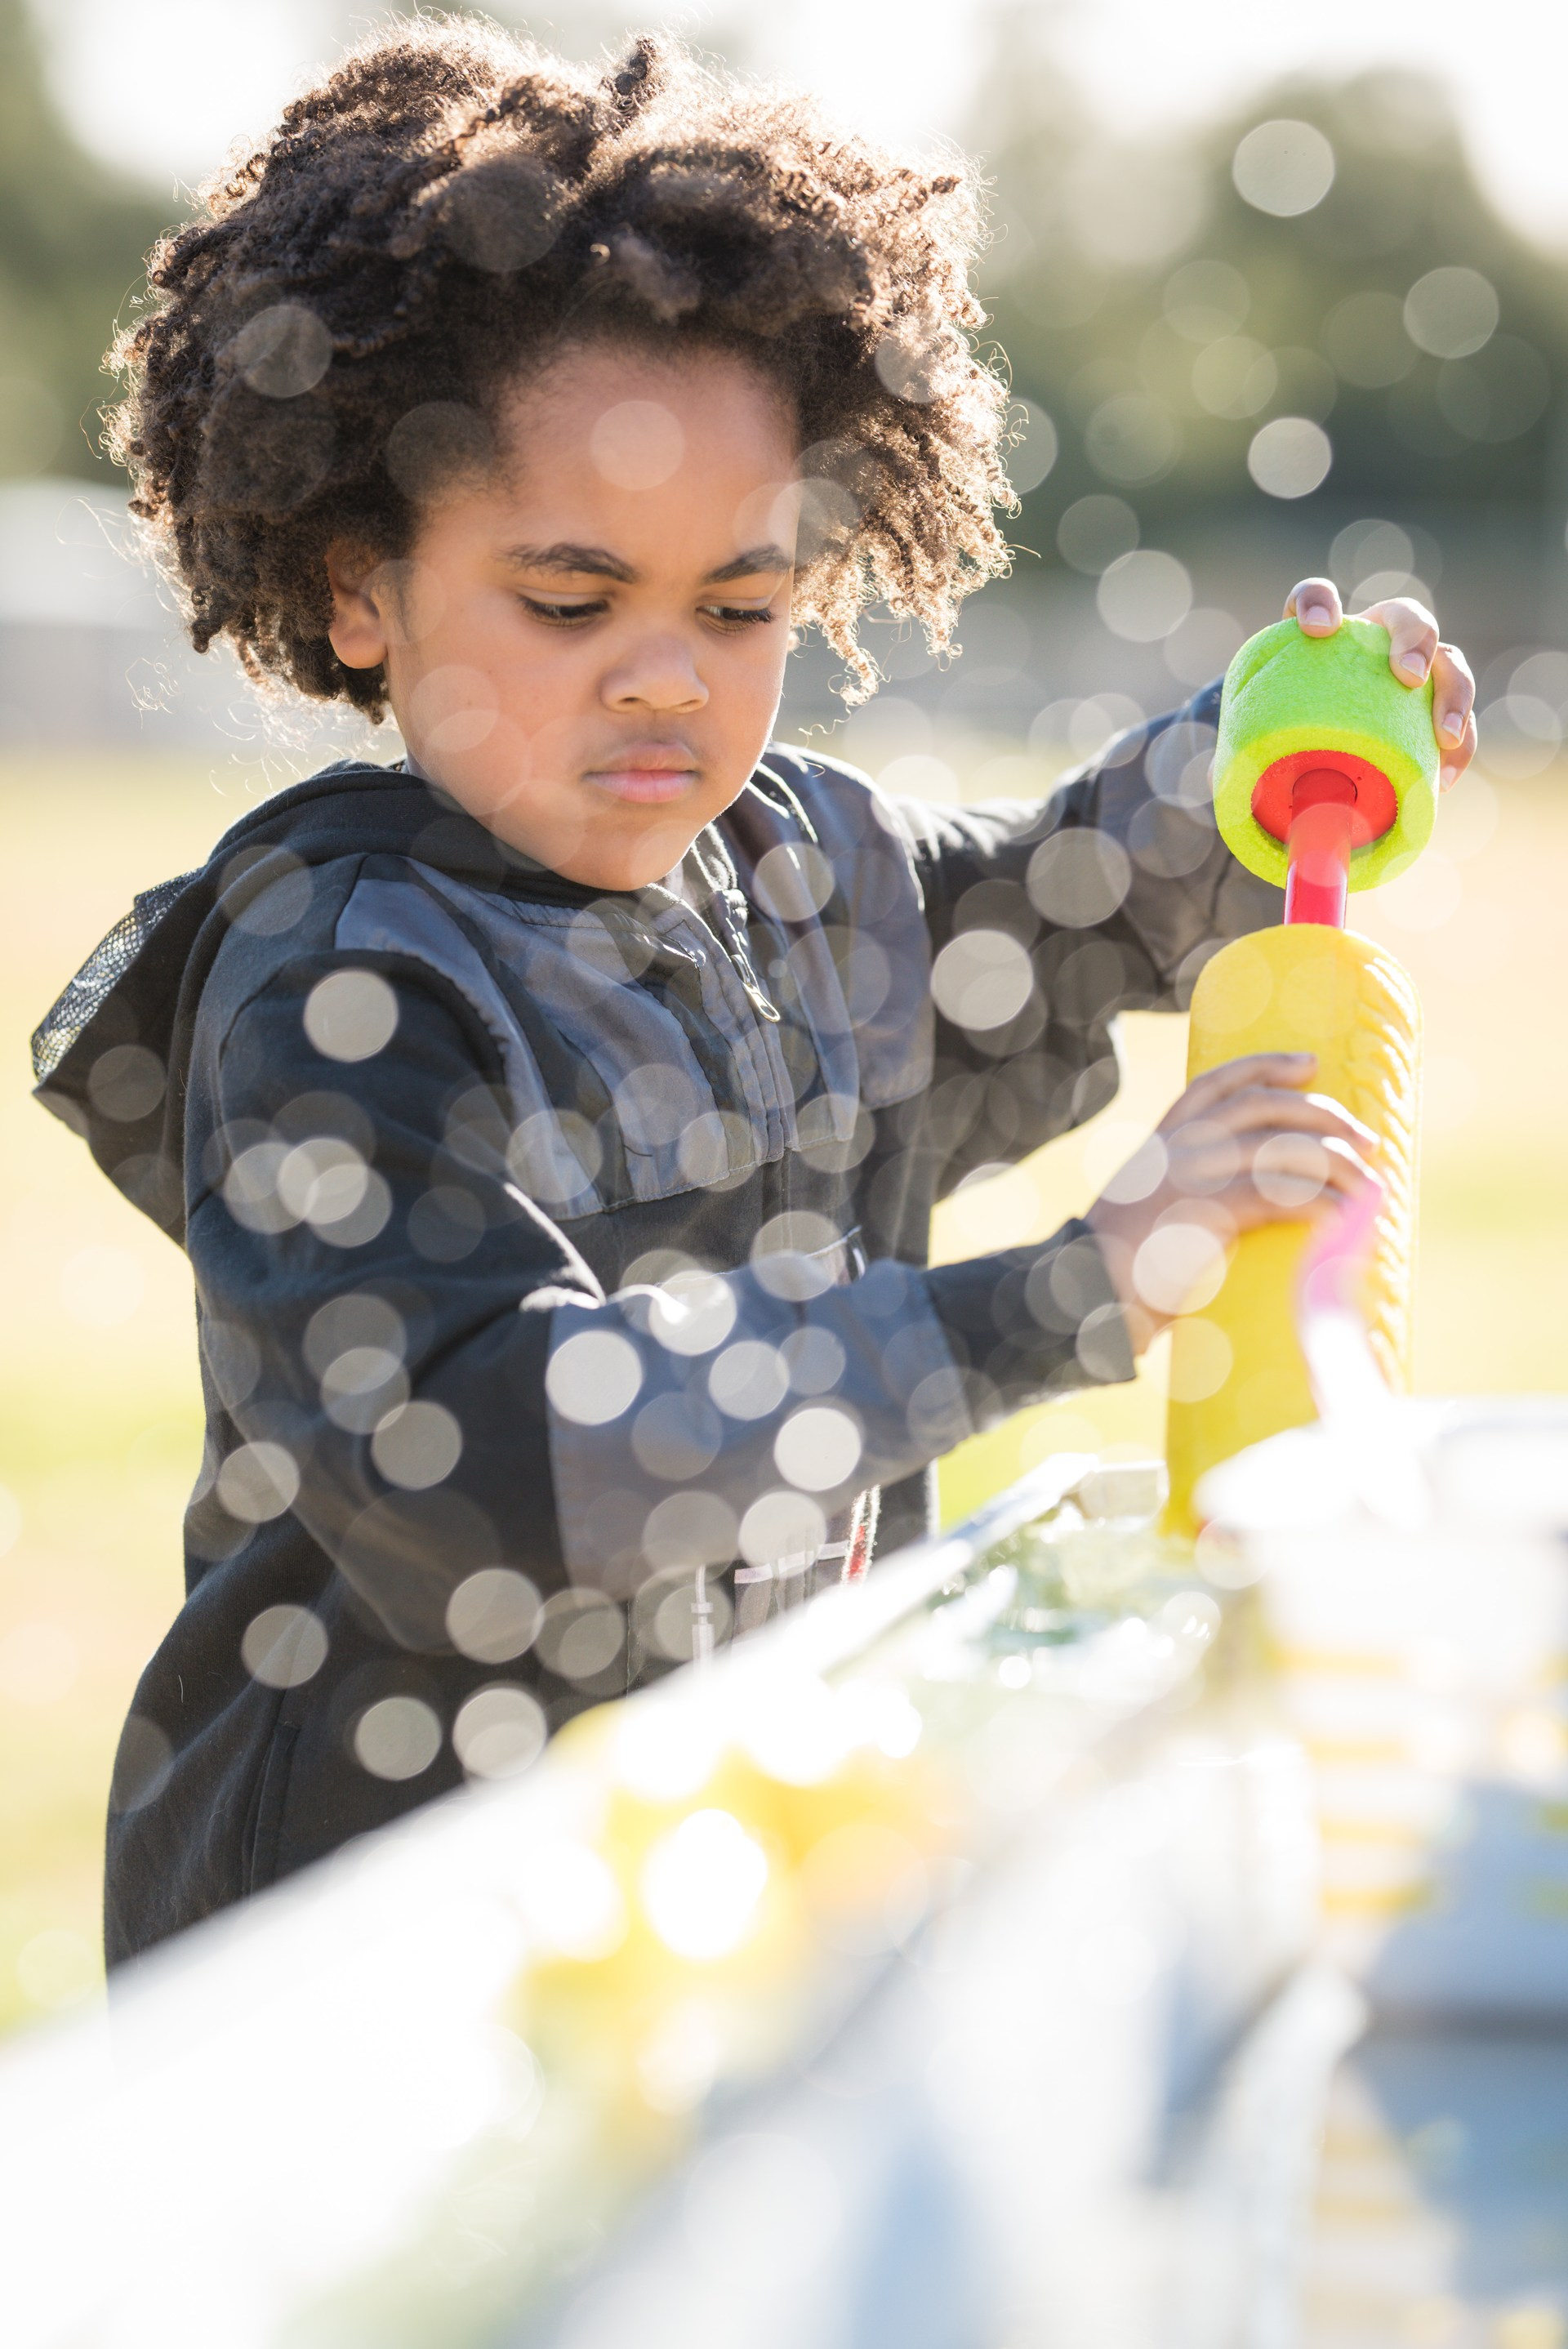 young boy playing with bubble blower